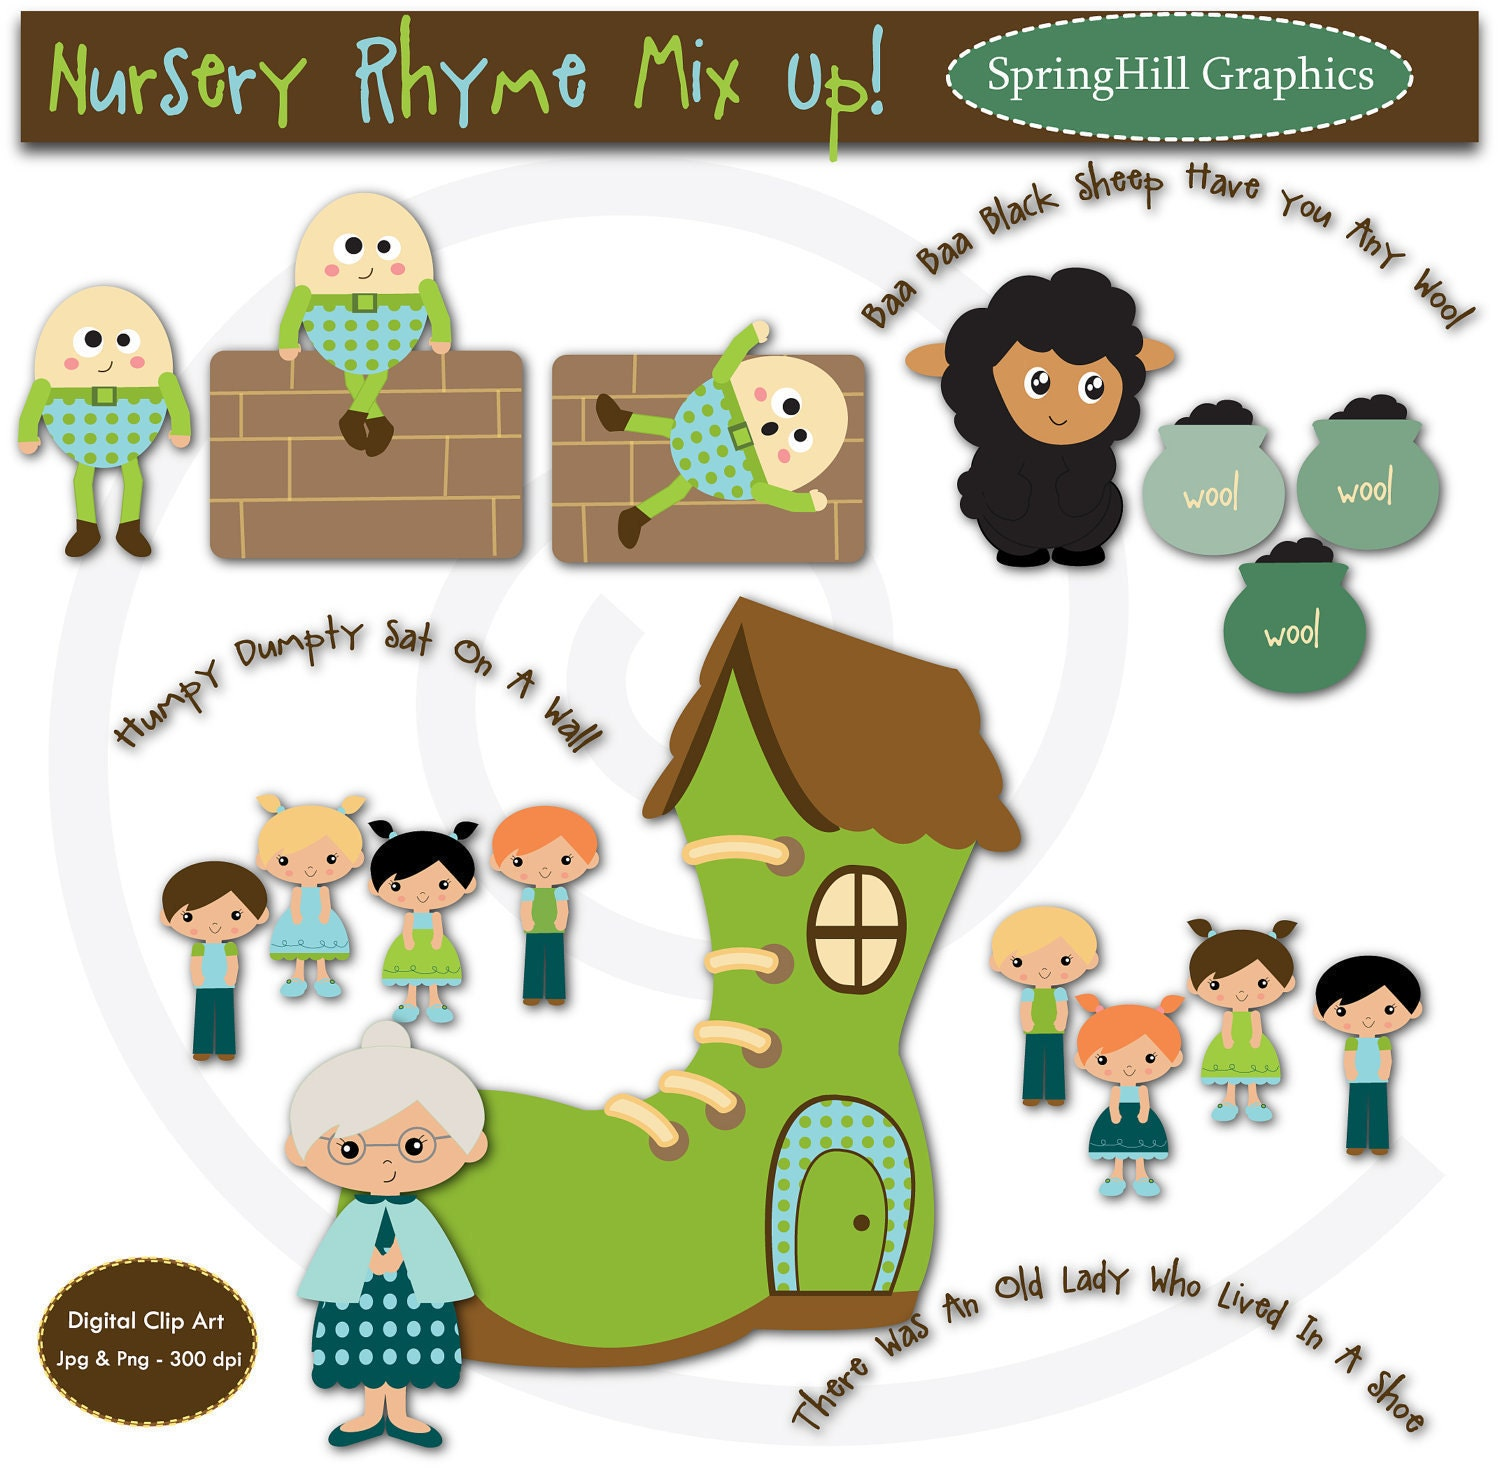 free clipart images nursery rhymes - photo #22